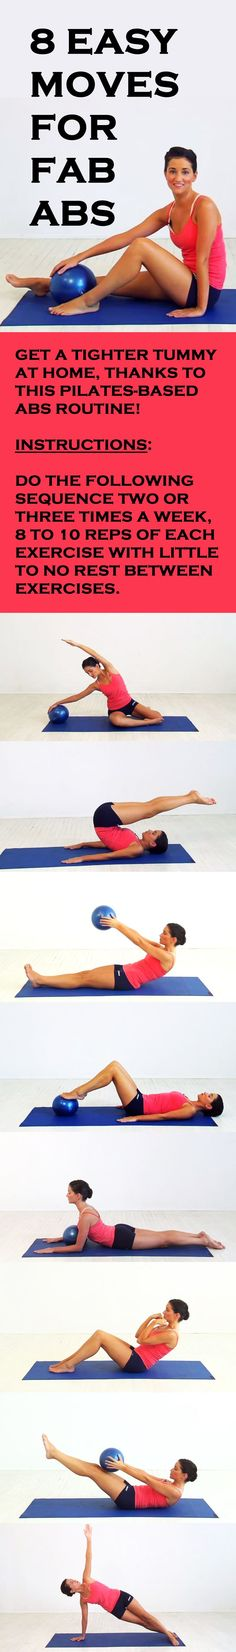 8 easy moves for fab abs! #abs #sixpack #flatstomach #flatbelly #coreworkout #abworkout #sixpackworkout #bellyfat #muffintop